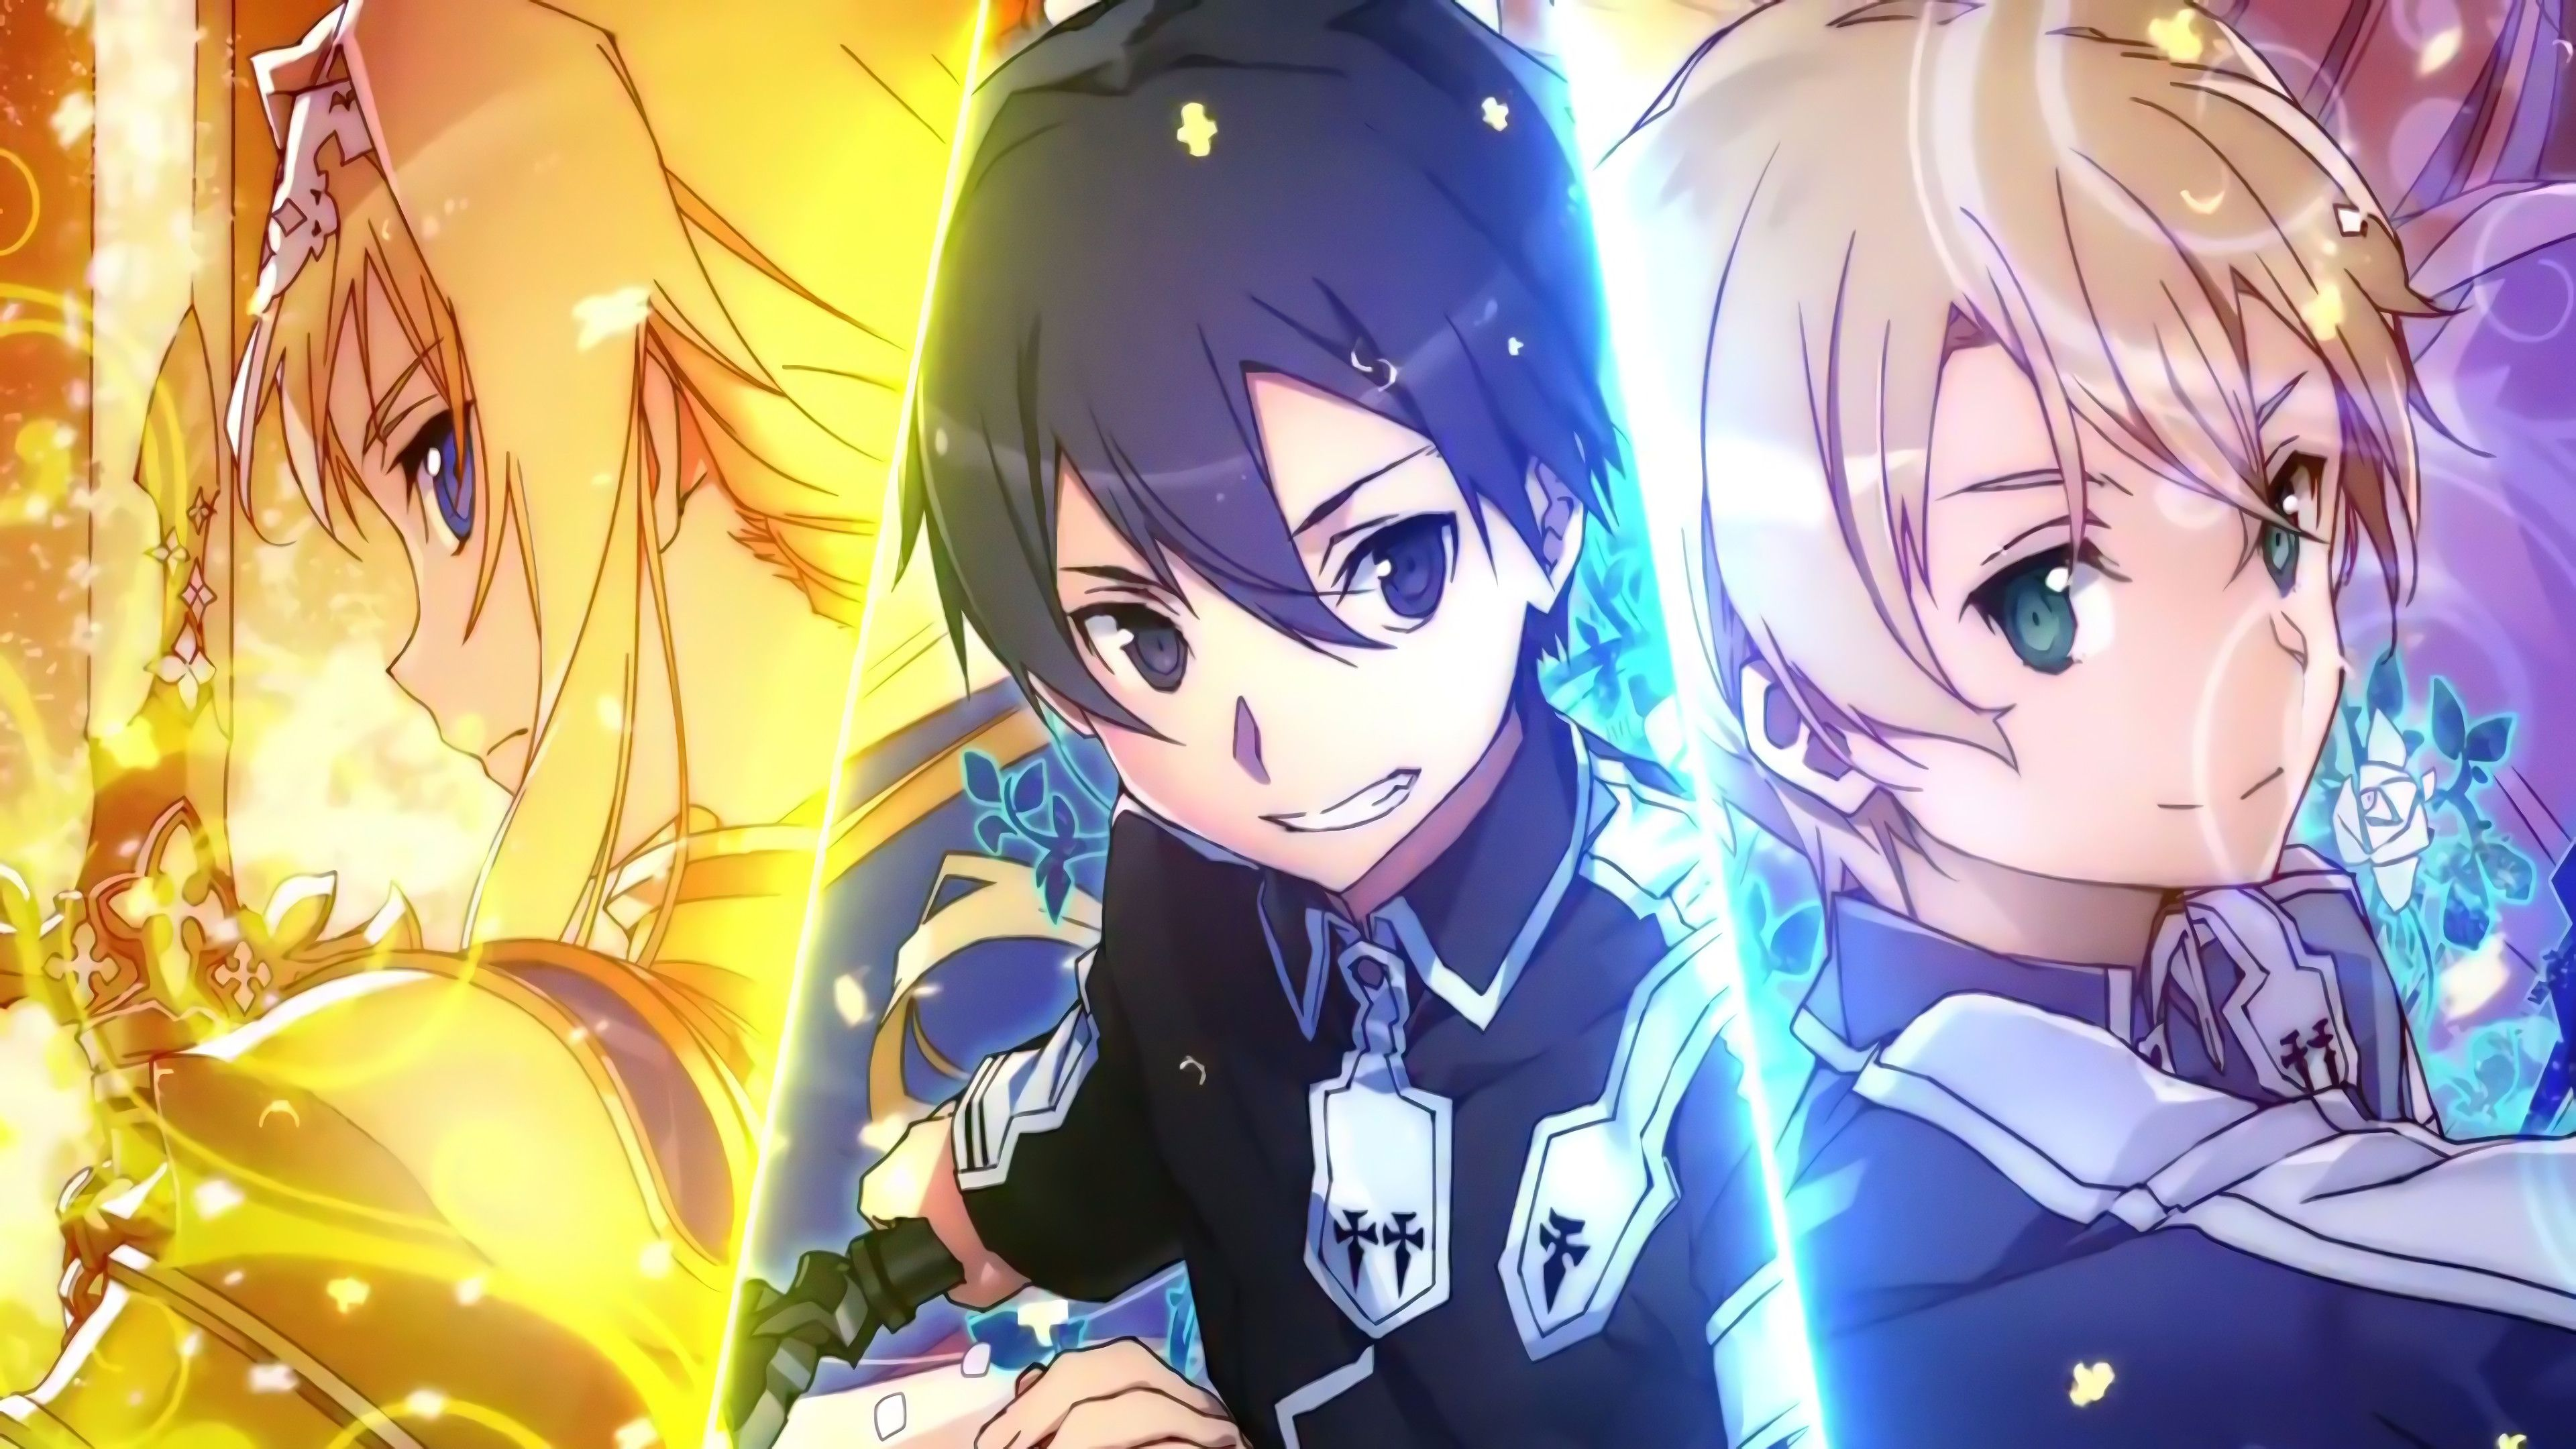 Sword Art Online Alicization Wallpapers Hd Sword Art Online Season Sword Art Online Wallpaper Sword Art